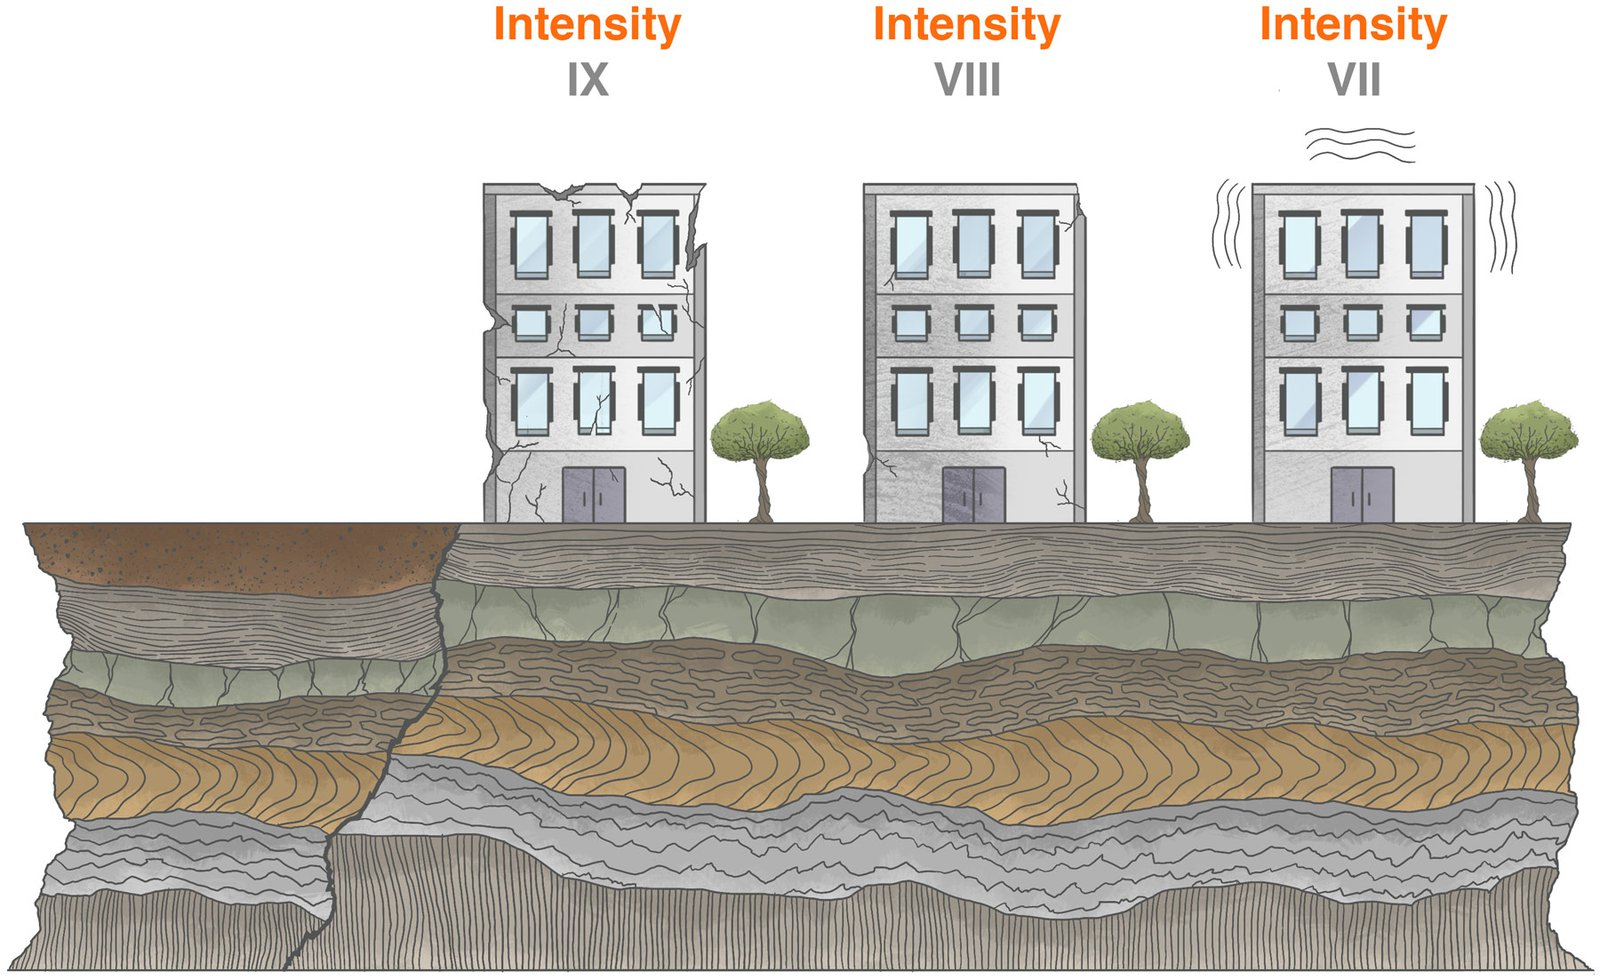 Schematic showing the intensity of an earthquake. Examples of intensity IX, VIII, and VII are provided.